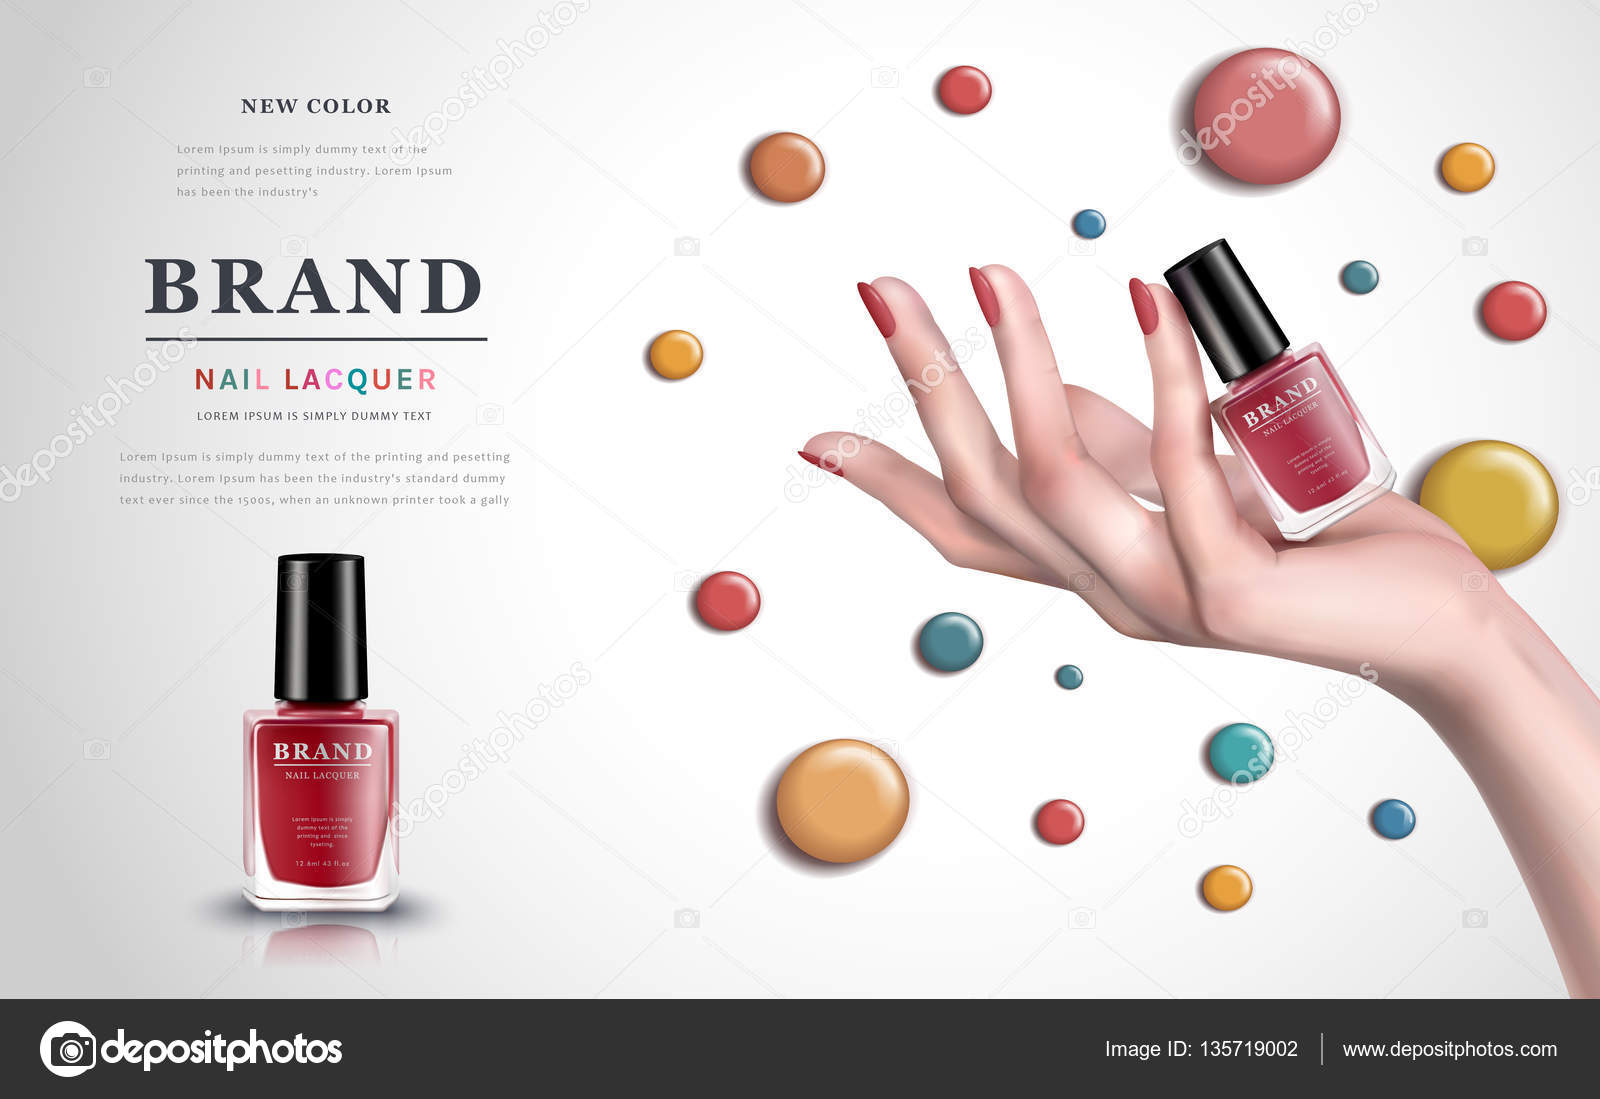 colorful nail lacquer ad — Stock Vector © HstrongART #135719002